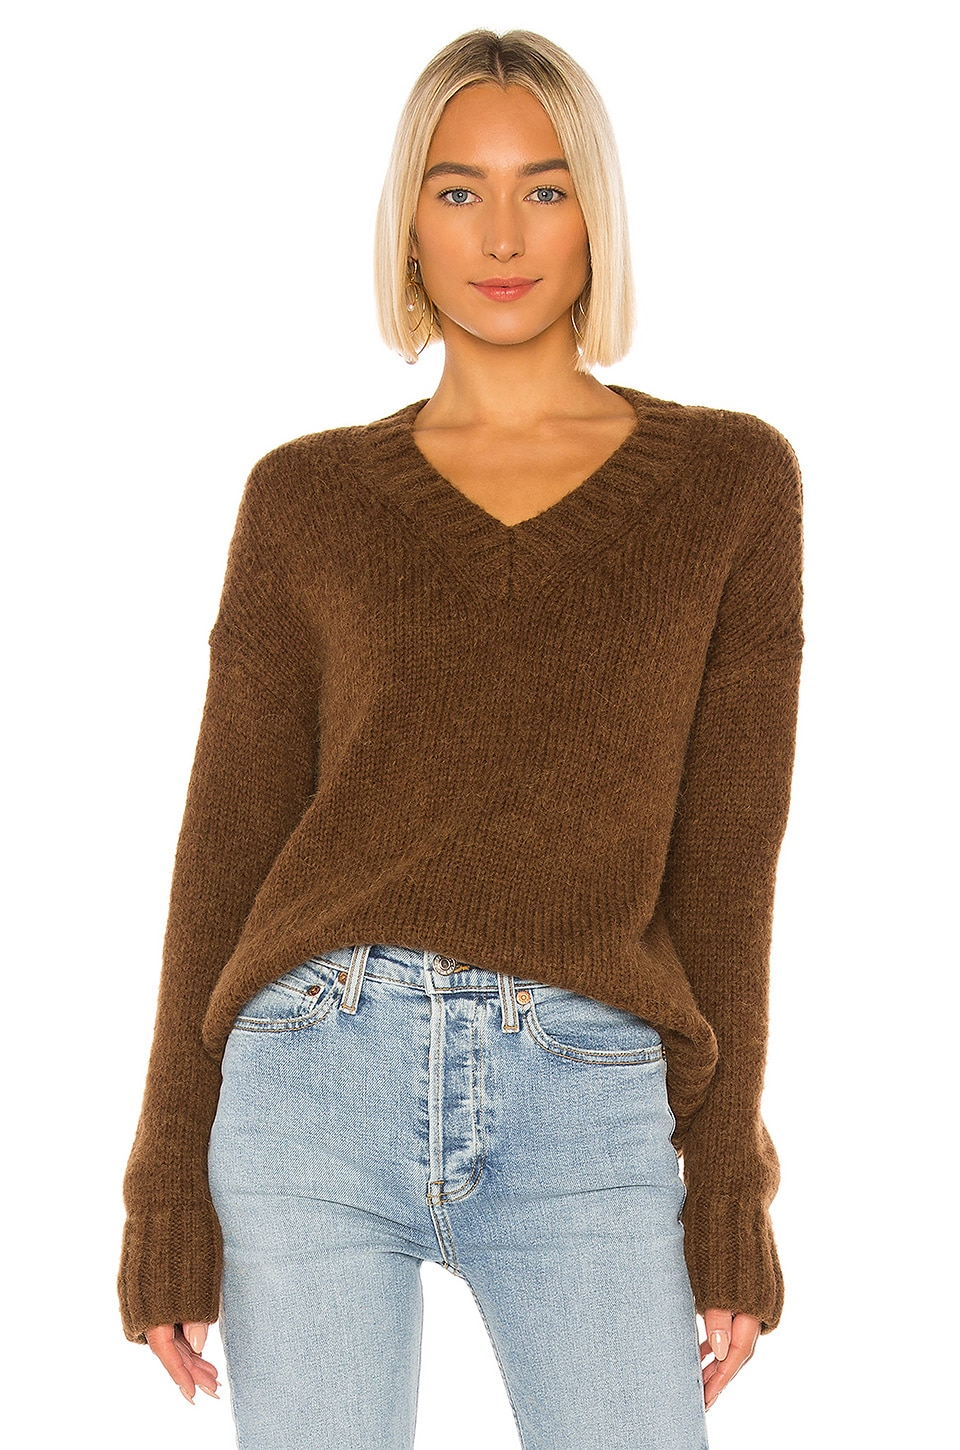 RE/DONE 90s Oversized V-Neck Sweater in Chocolate